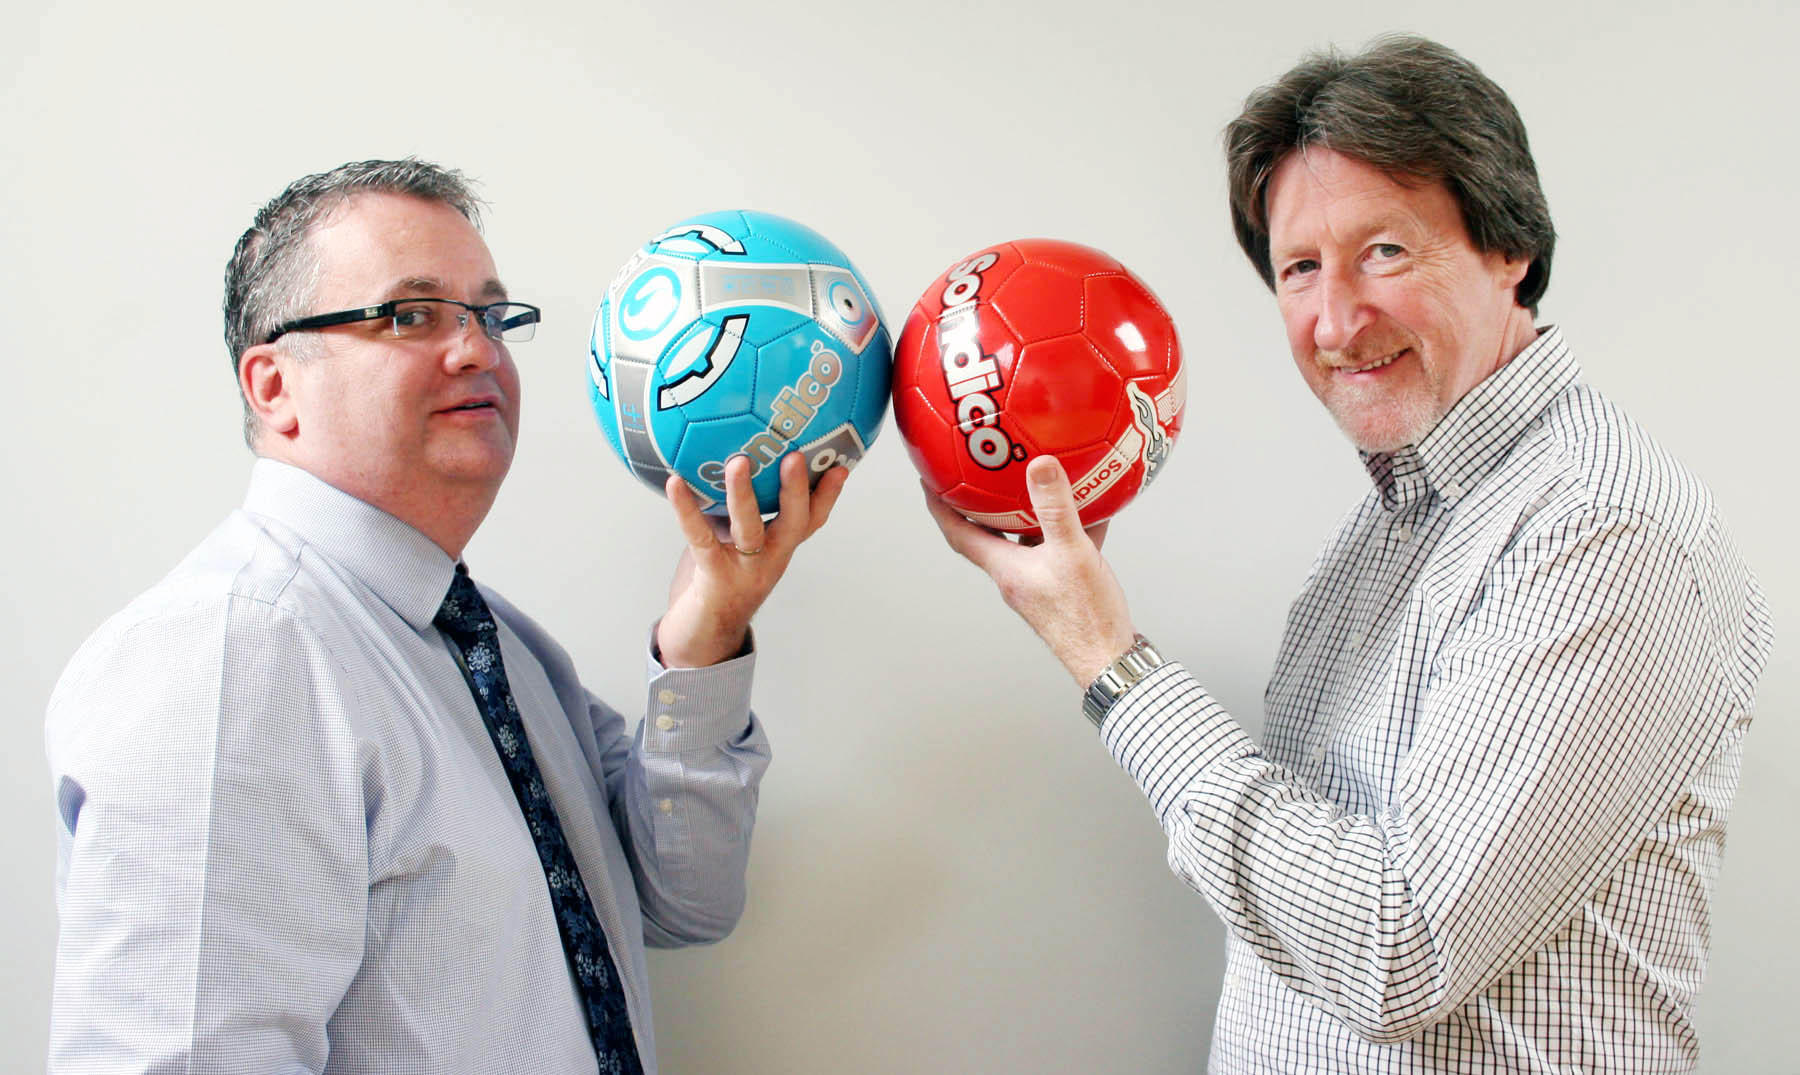 EYE ON THE BALL: Bradford & District Keybury Junior League secretary and treasurer Peter Walshe, left, and Frank Gee, managing director of sponsor Keybury Fire and Security